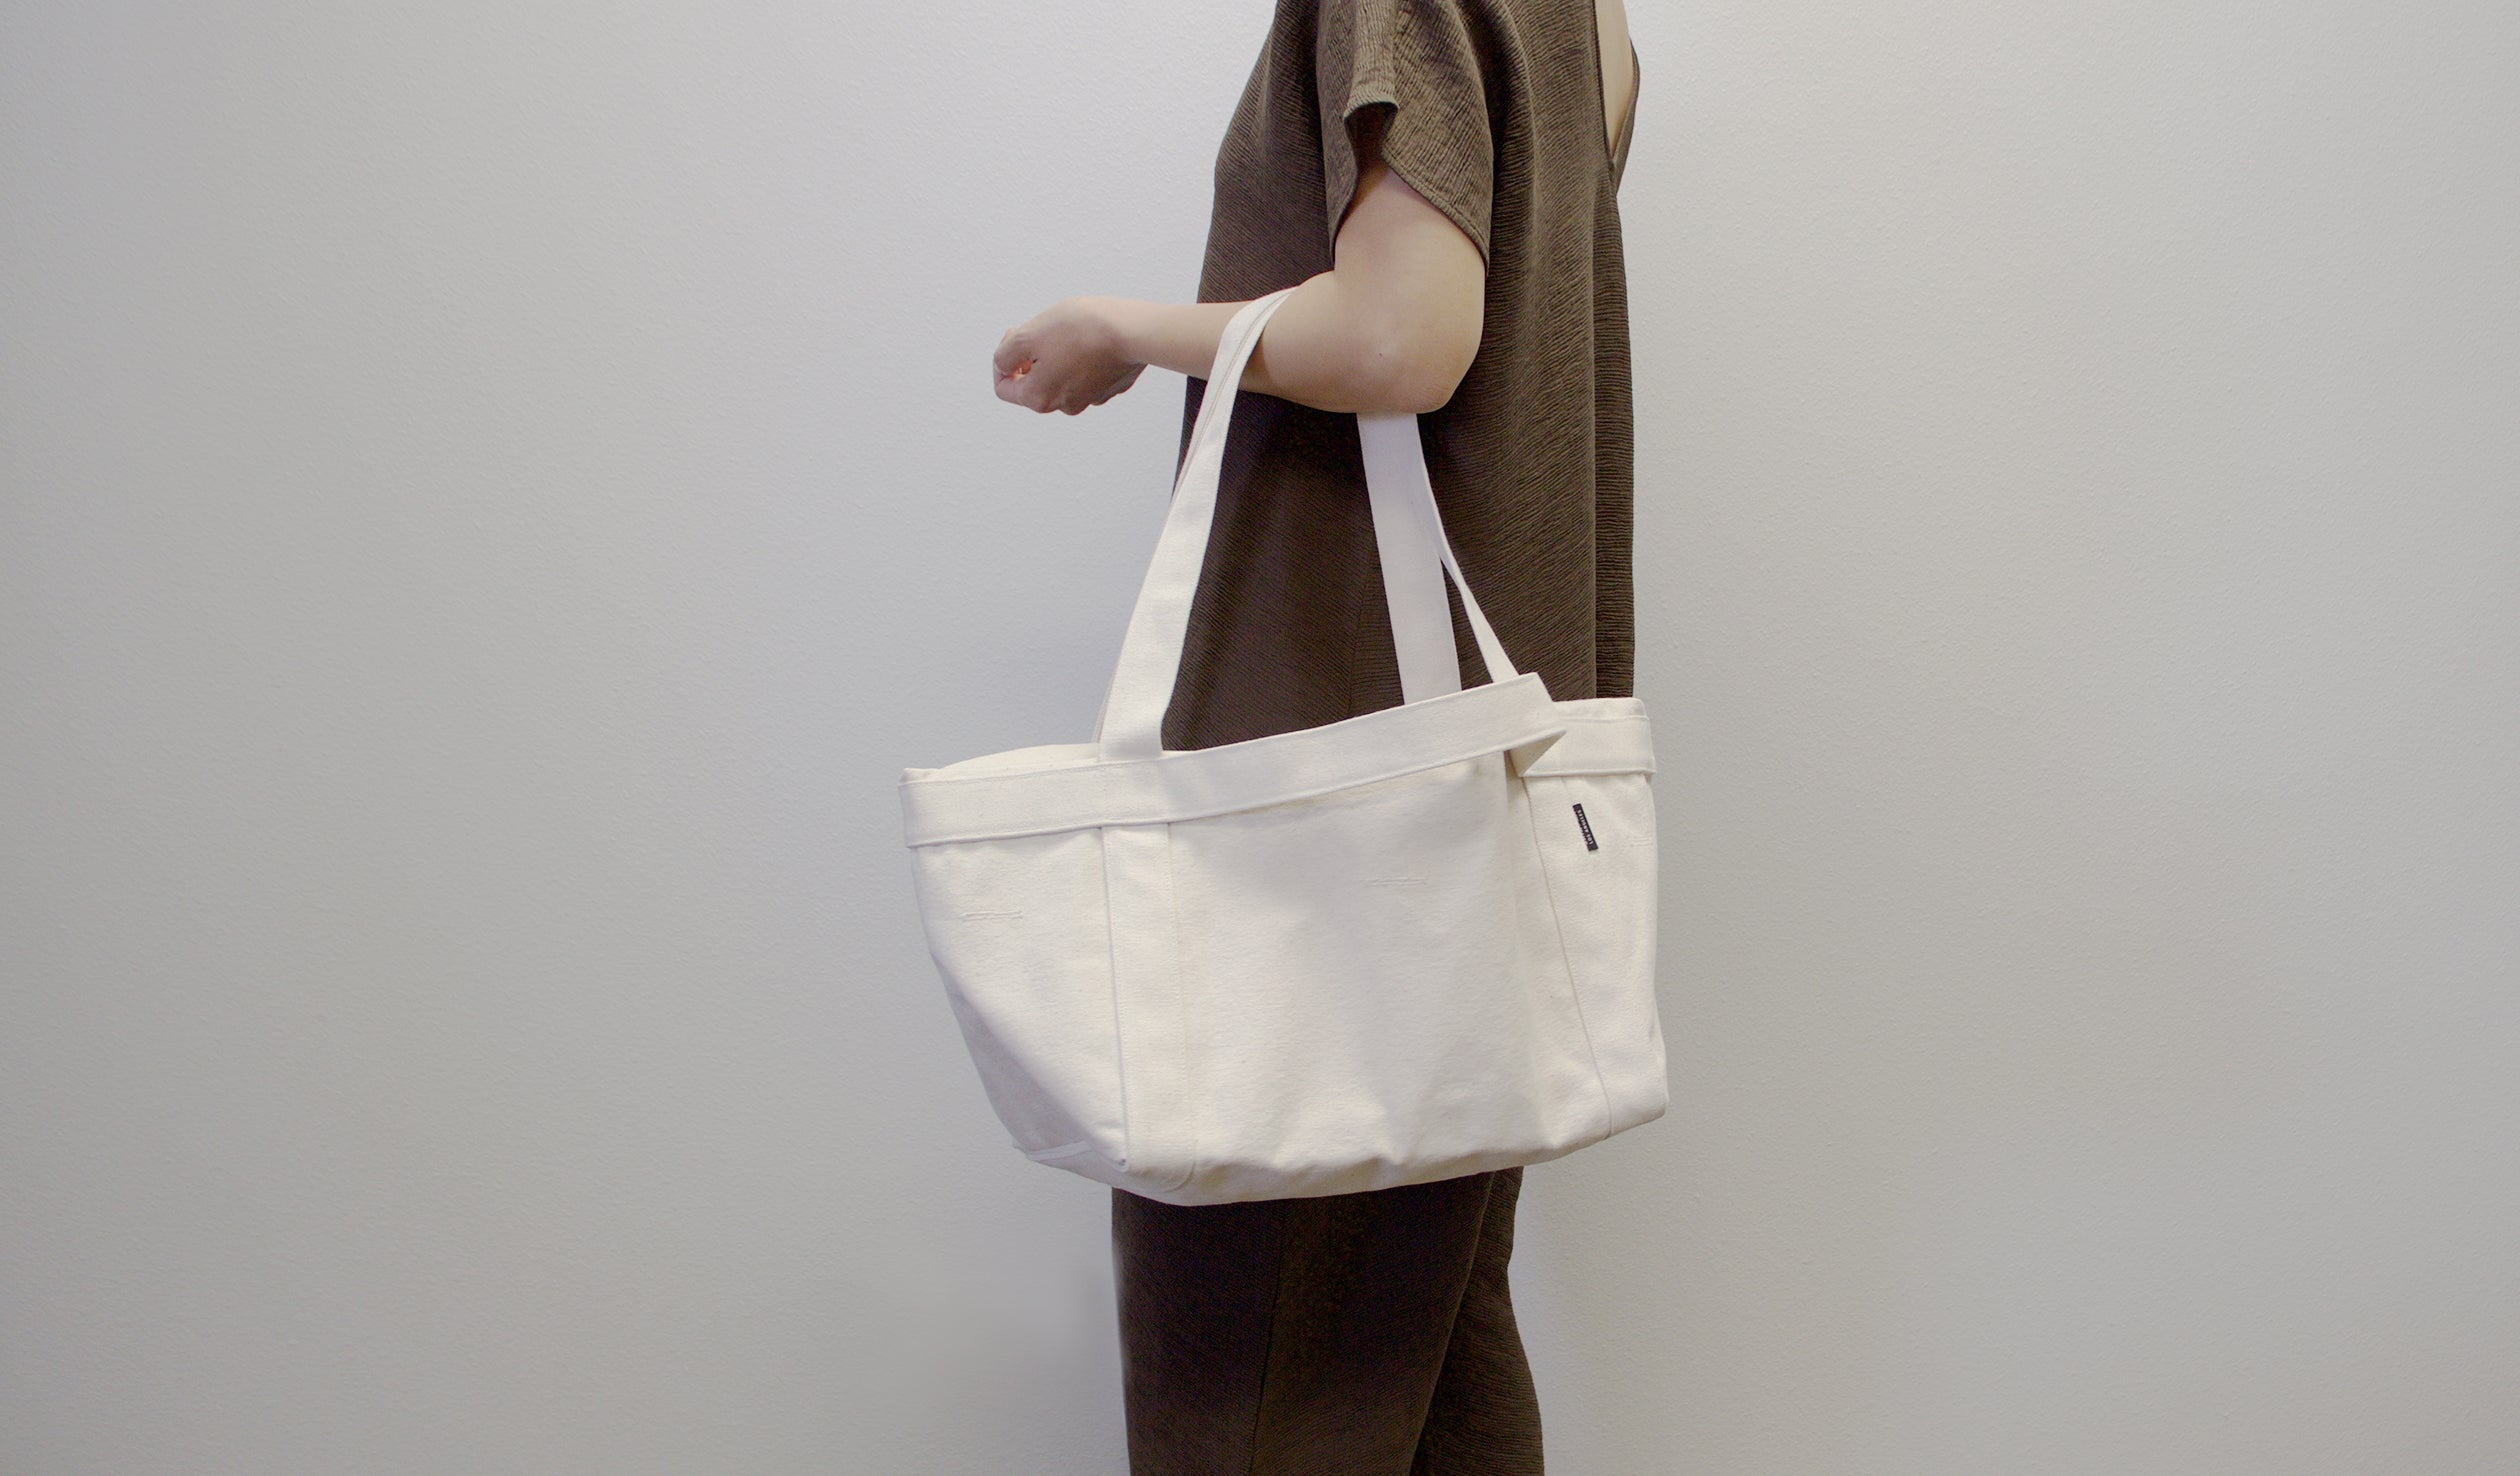 model holding grand day tote in natural color